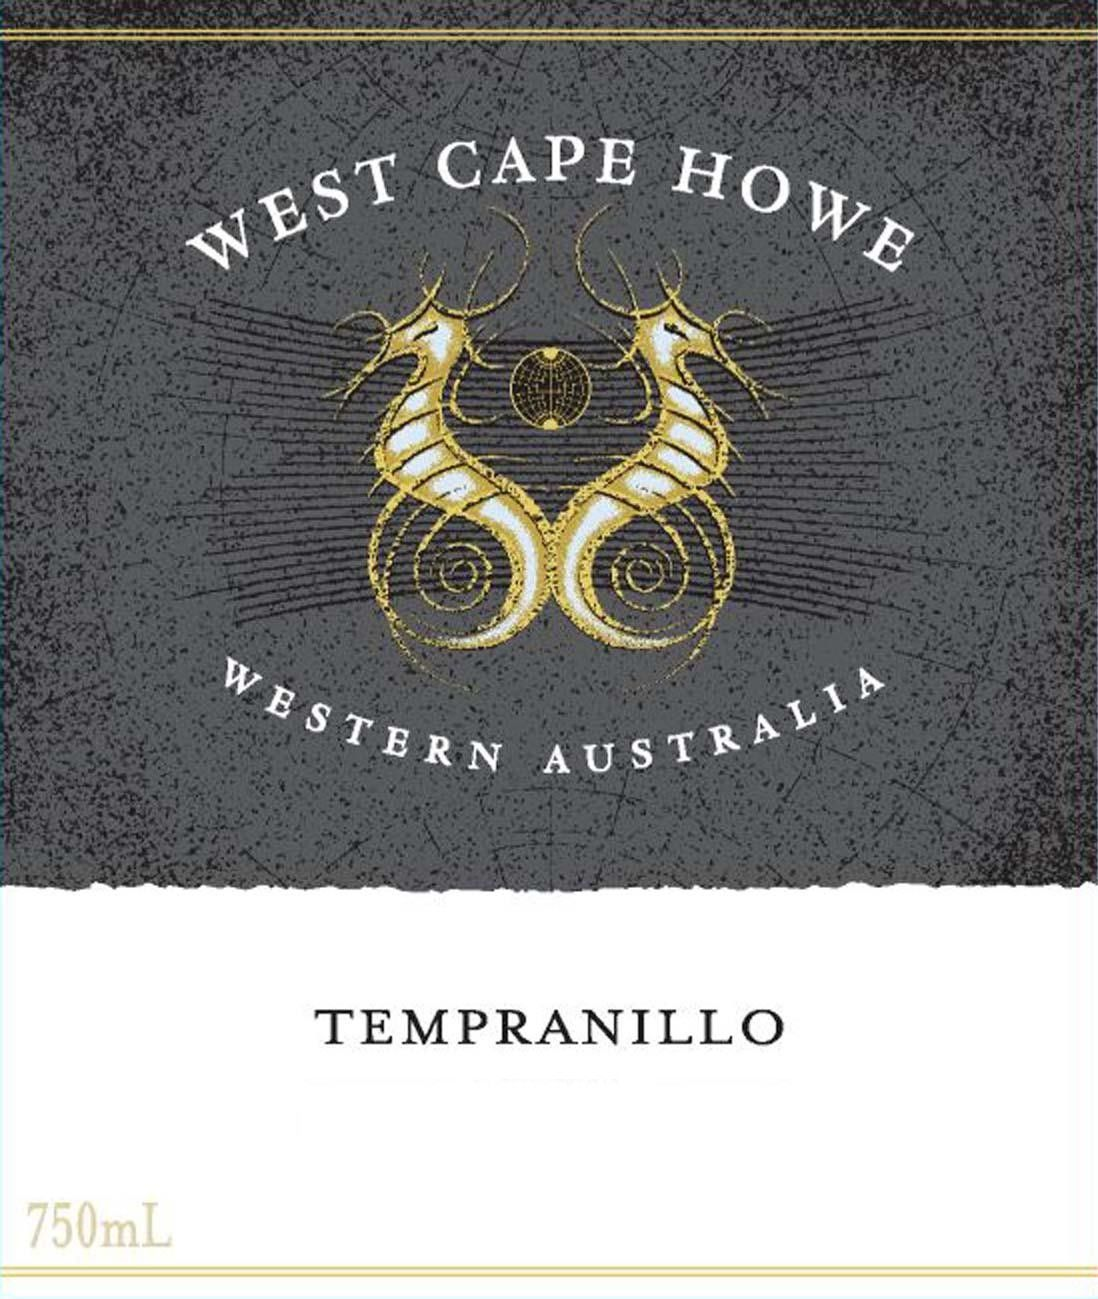 West Cape Howe Tempranillo 2010 Front Label